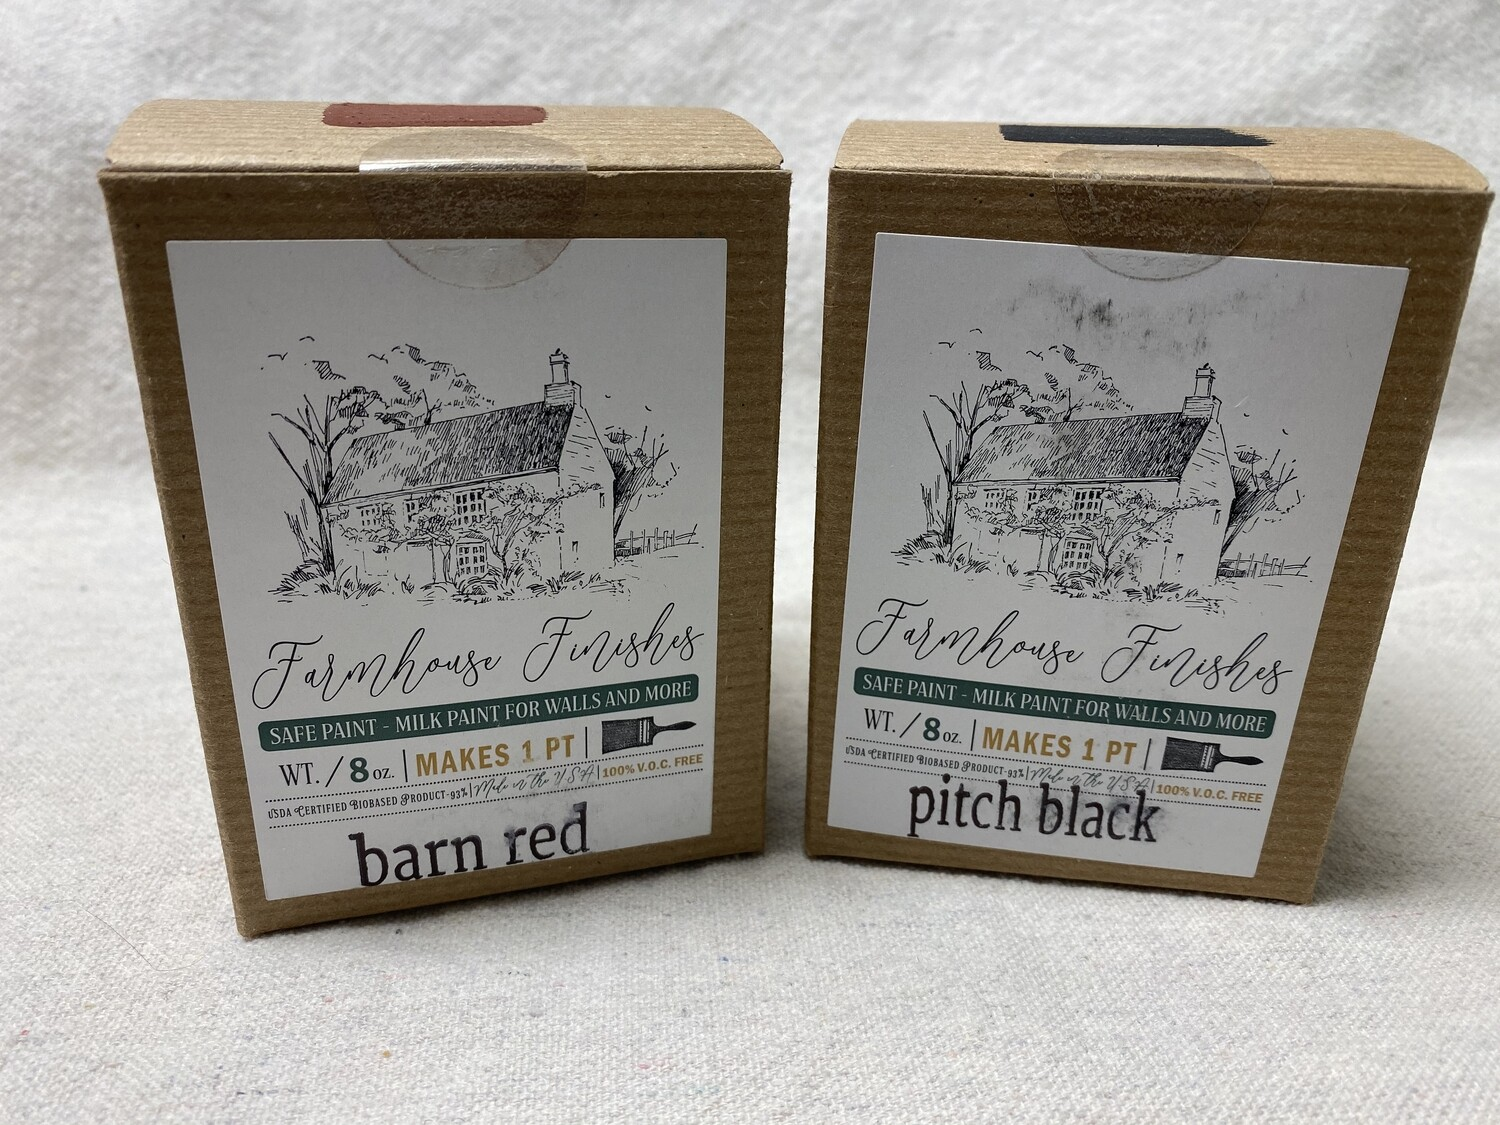 Farmhouse Finishes 6oz